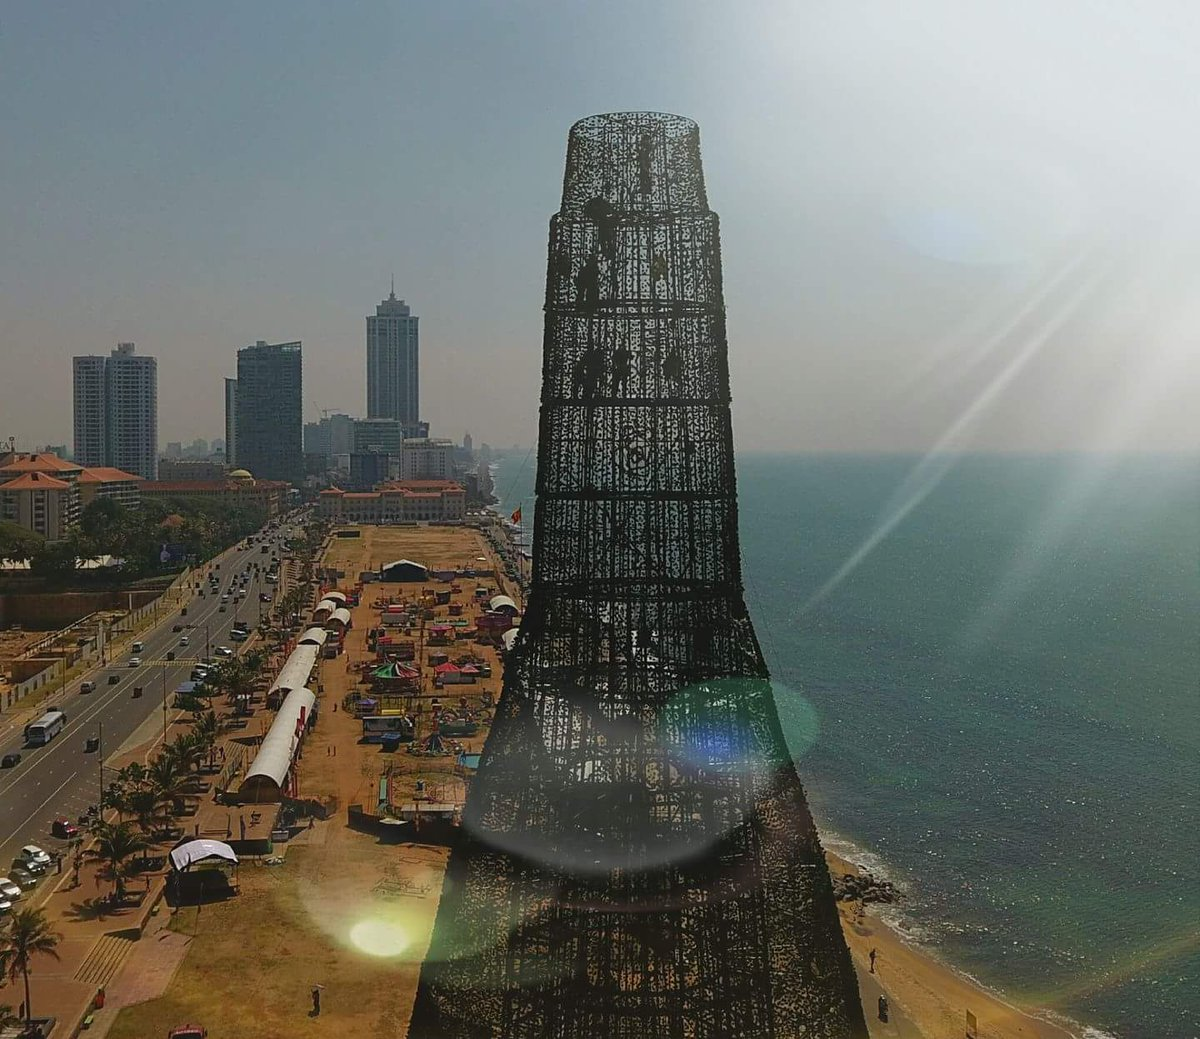 worlds tallest christmas tree complete opening at 7 tonight - Worlds Largest Christmas Tree